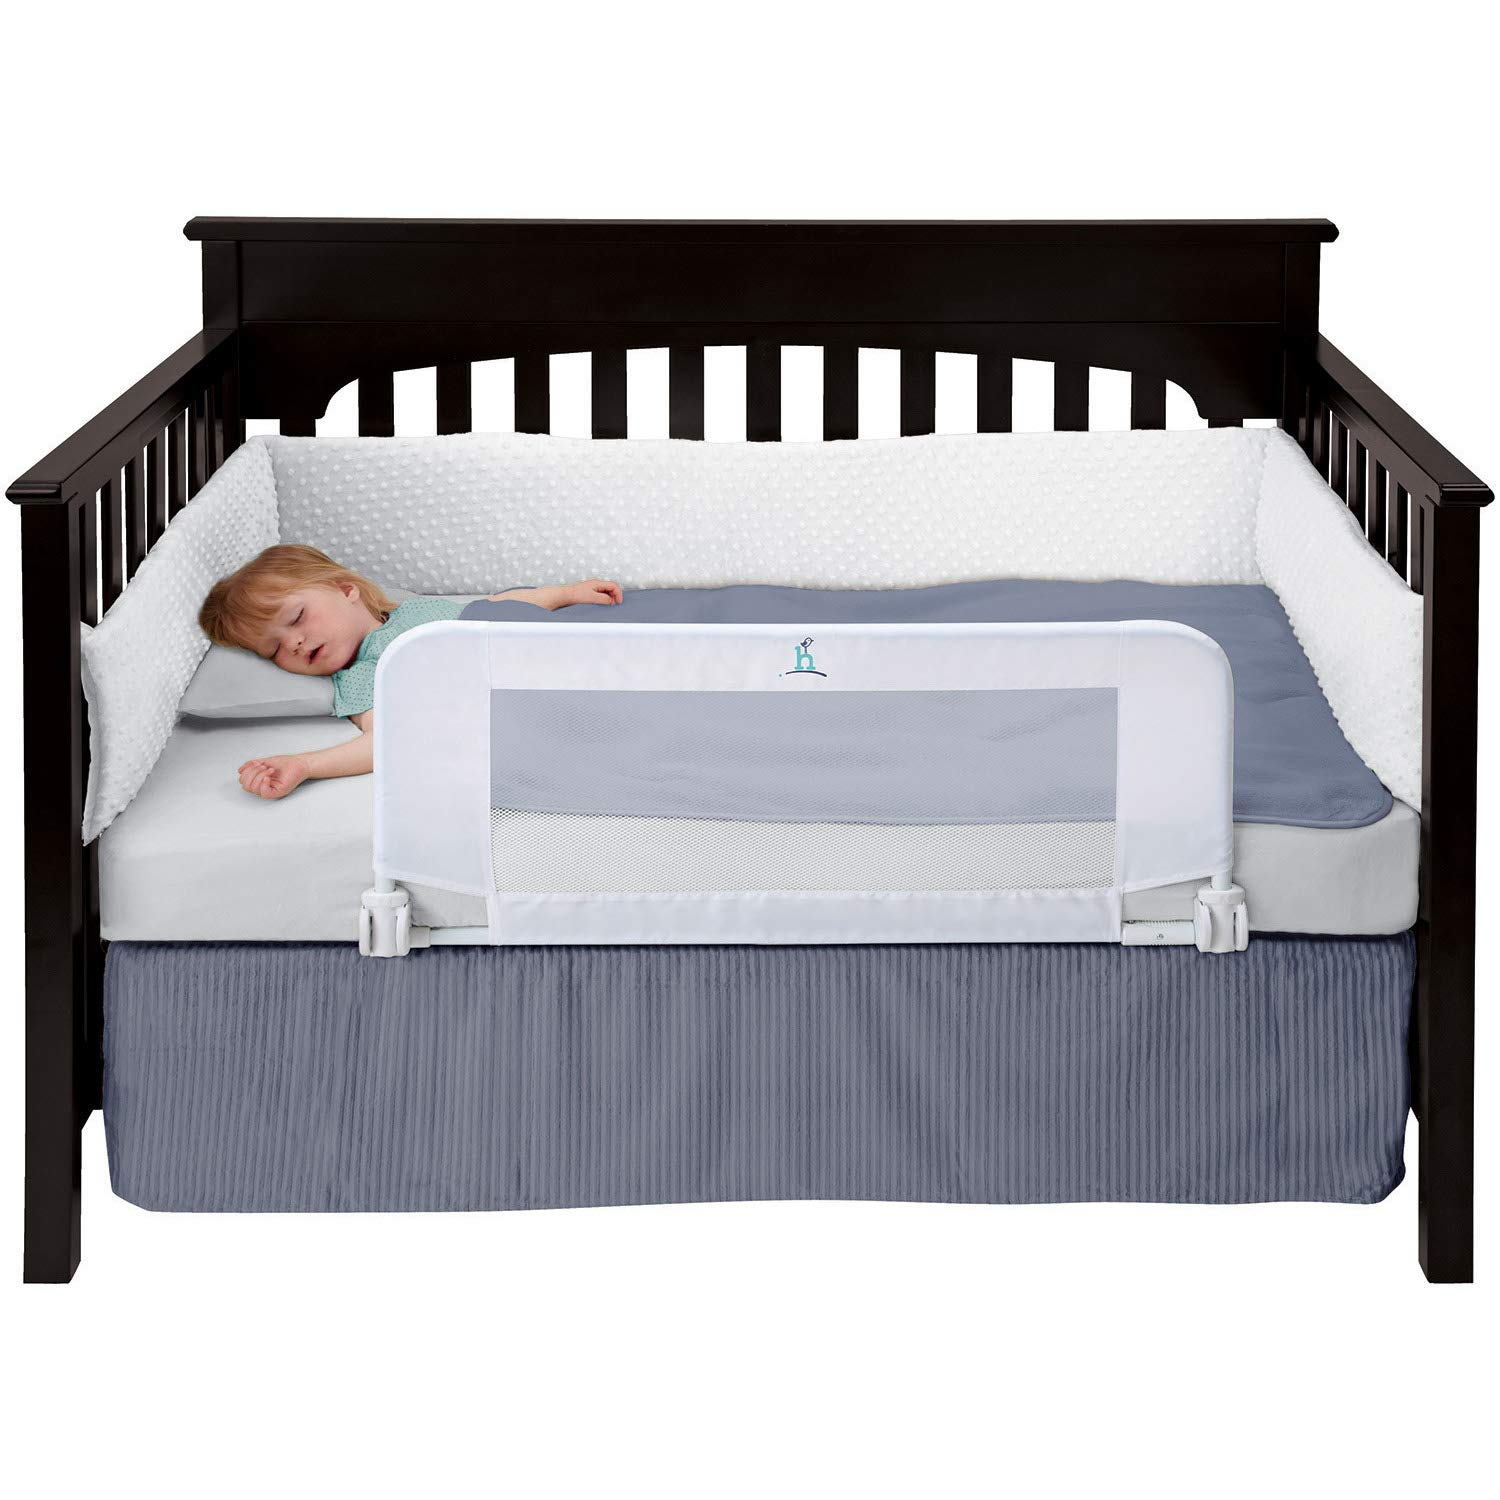 Hiccapop Convertible Crib Toddler, When To Go From Crib Toddler Bed